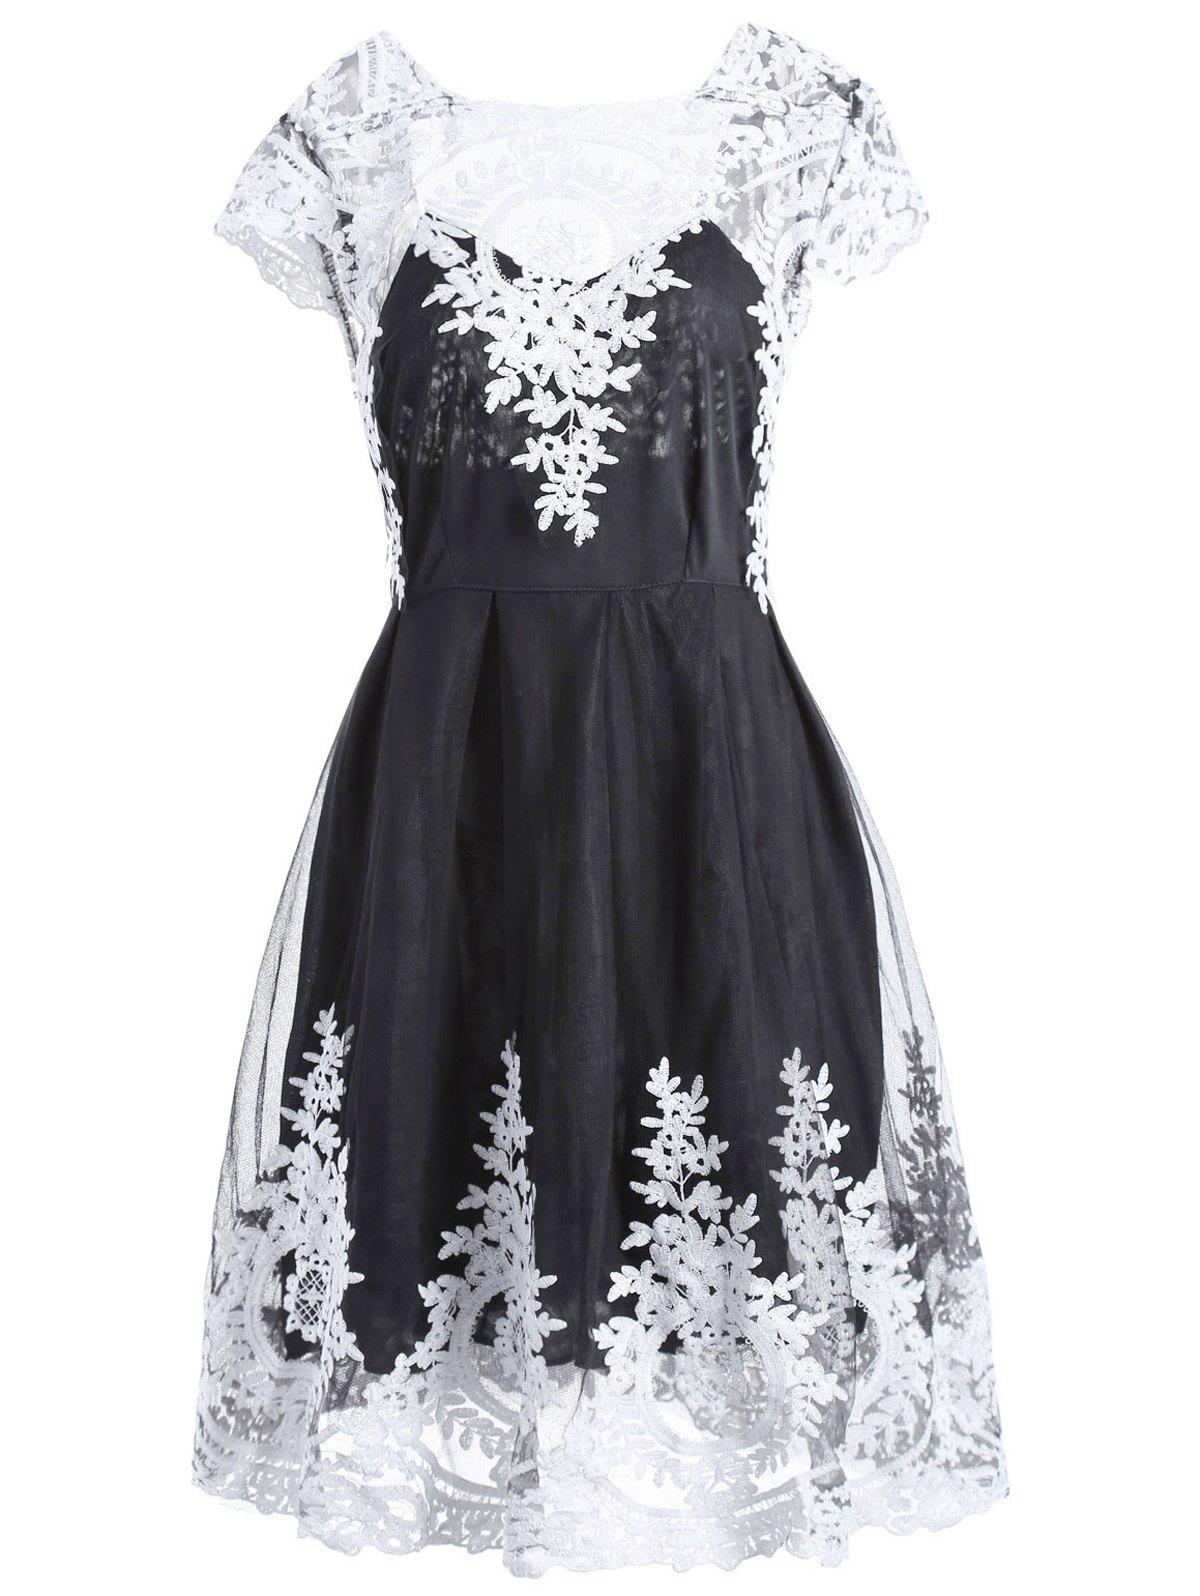 Retro Lace Square Neck Short Sleeve Dress For Women - BLACK S